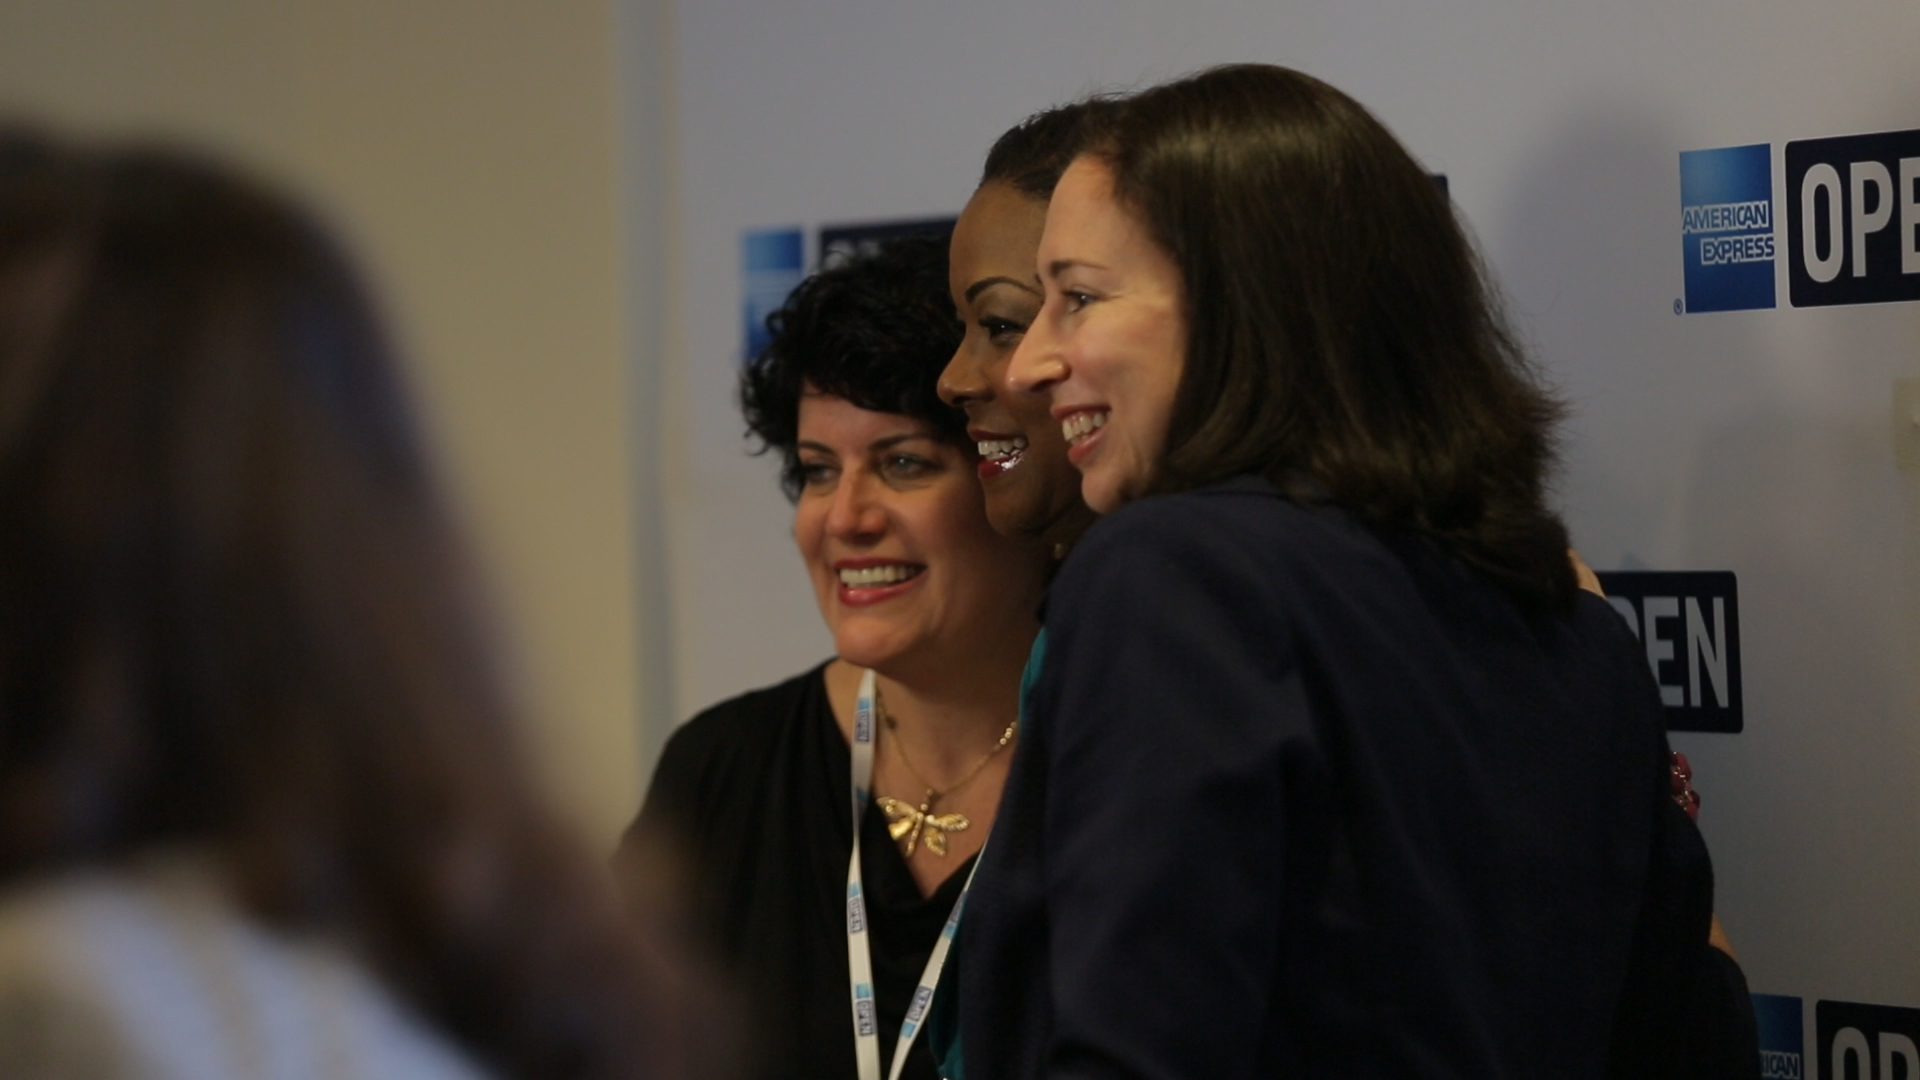 AmEx OPEN Women: CEO BootCamp Launch Event